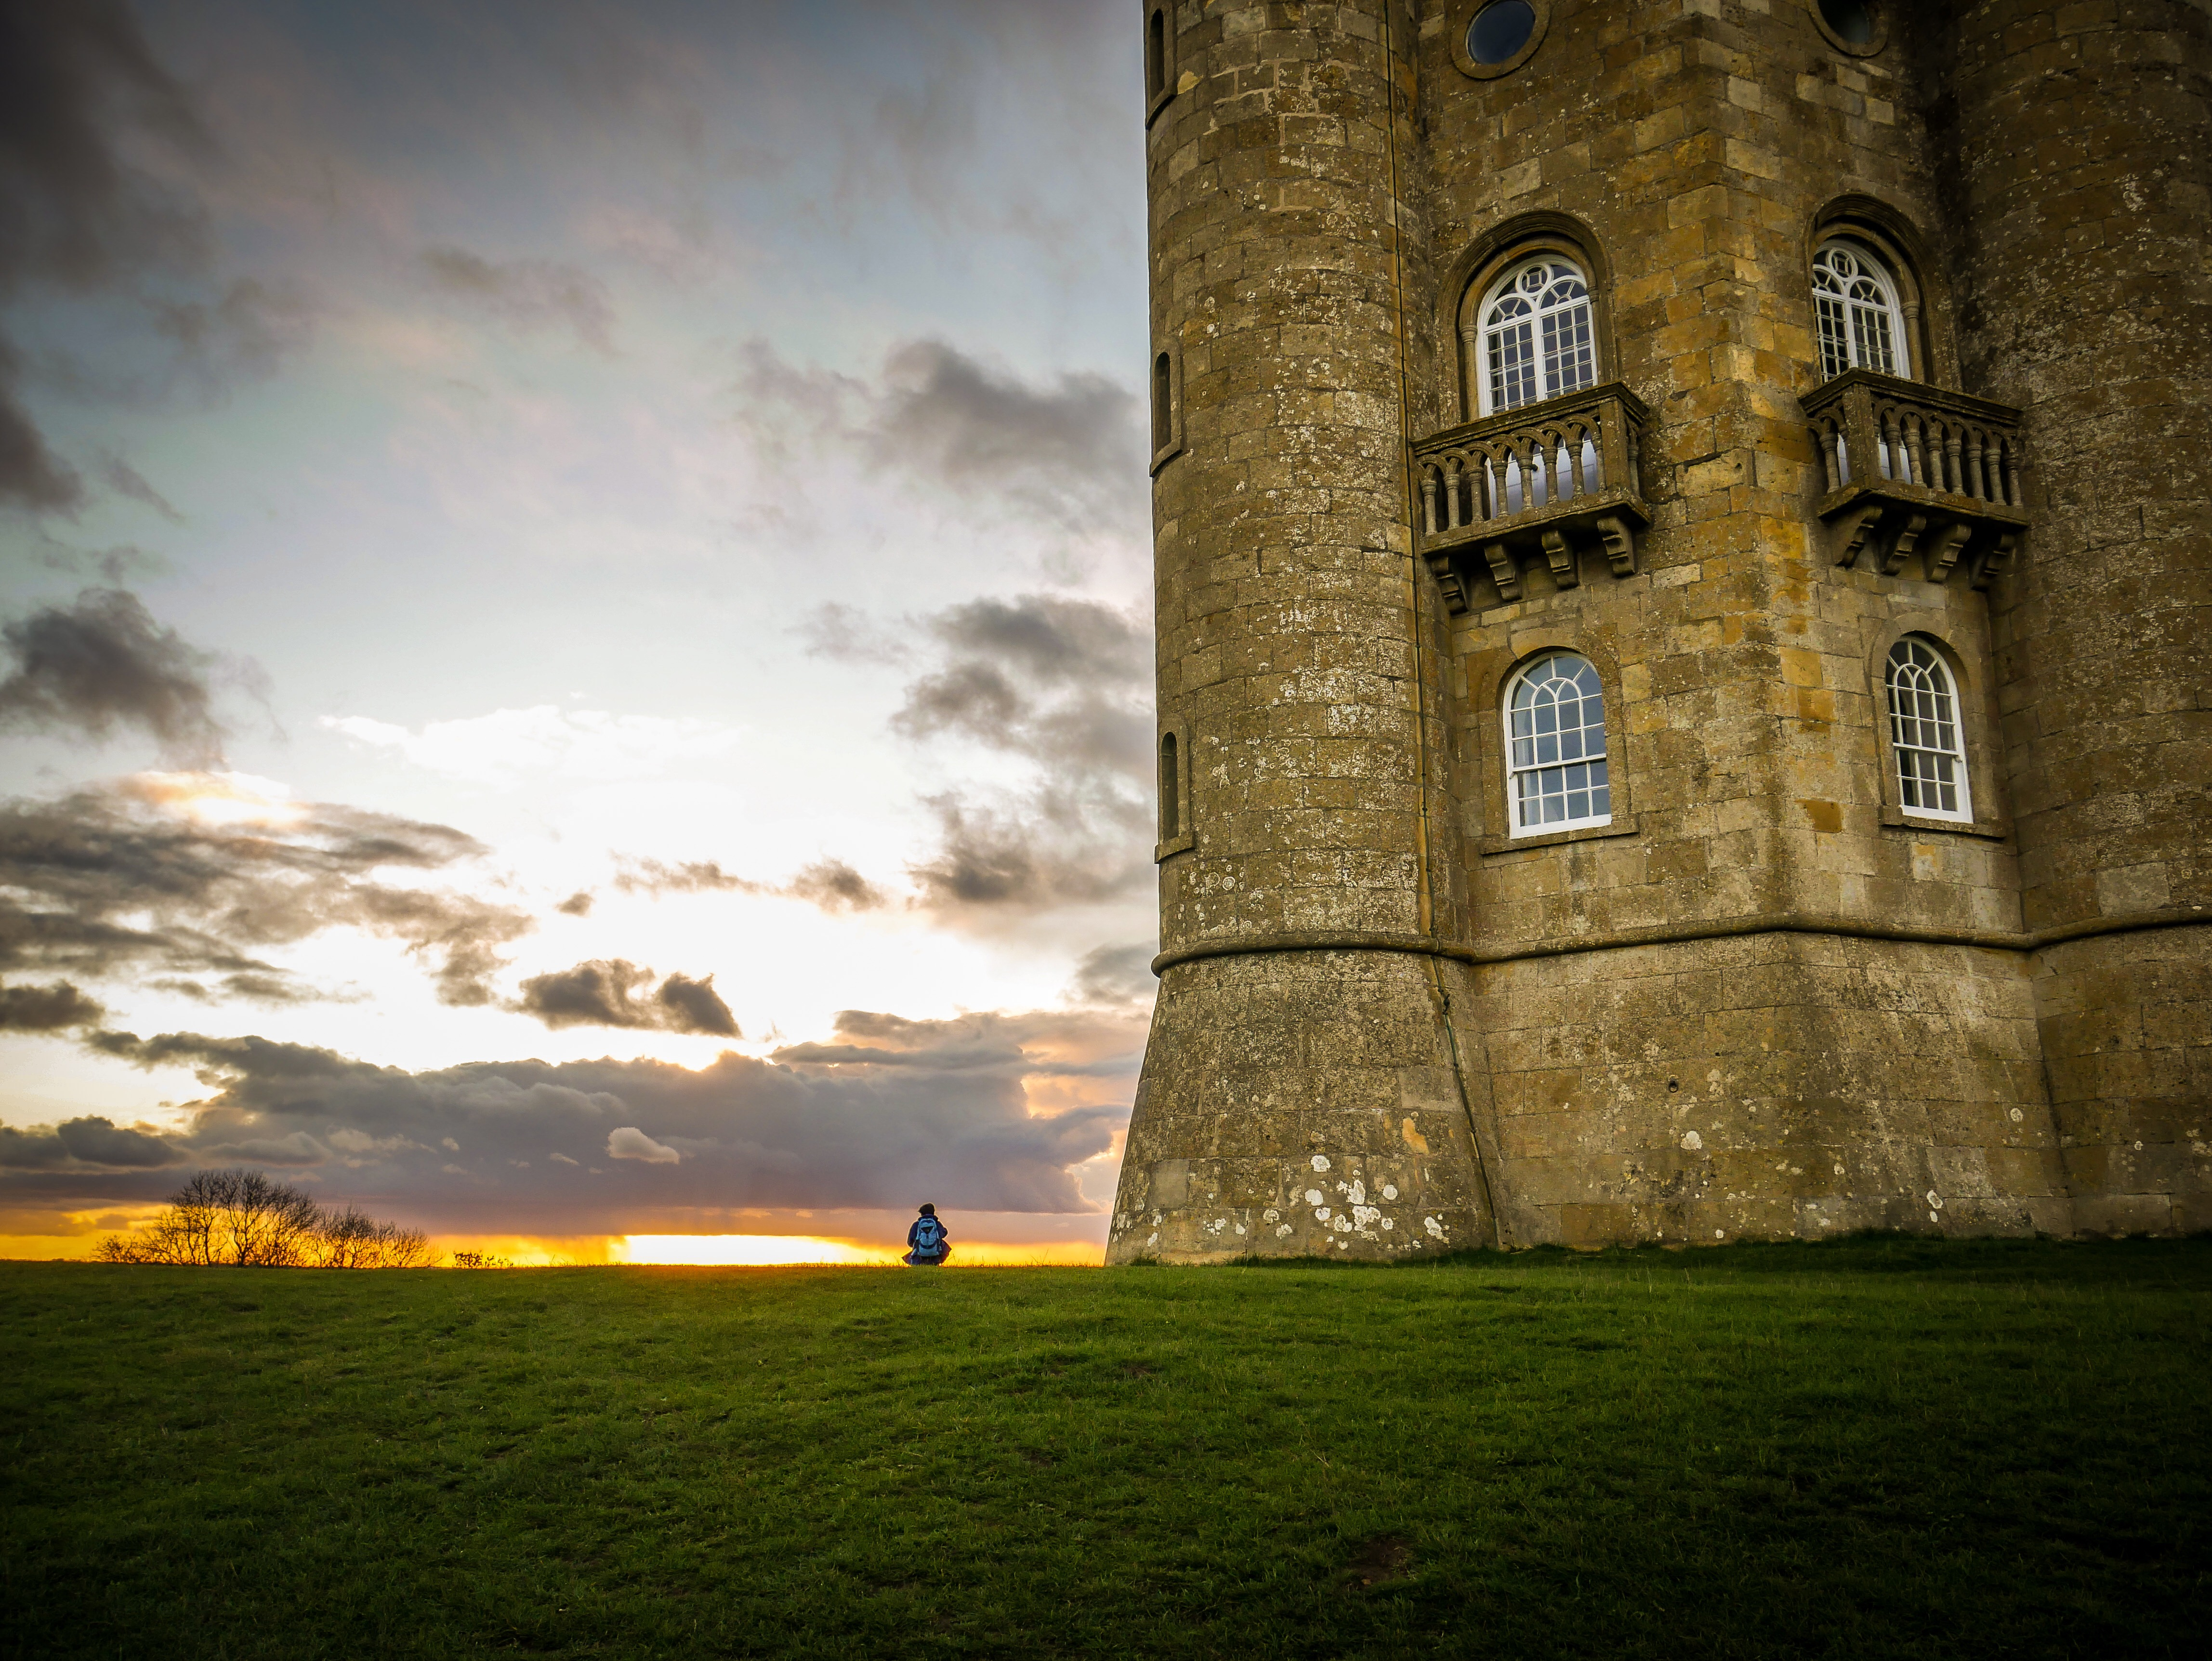 Rob Lyon's stunning photograph of Broadway Tower at sunset.